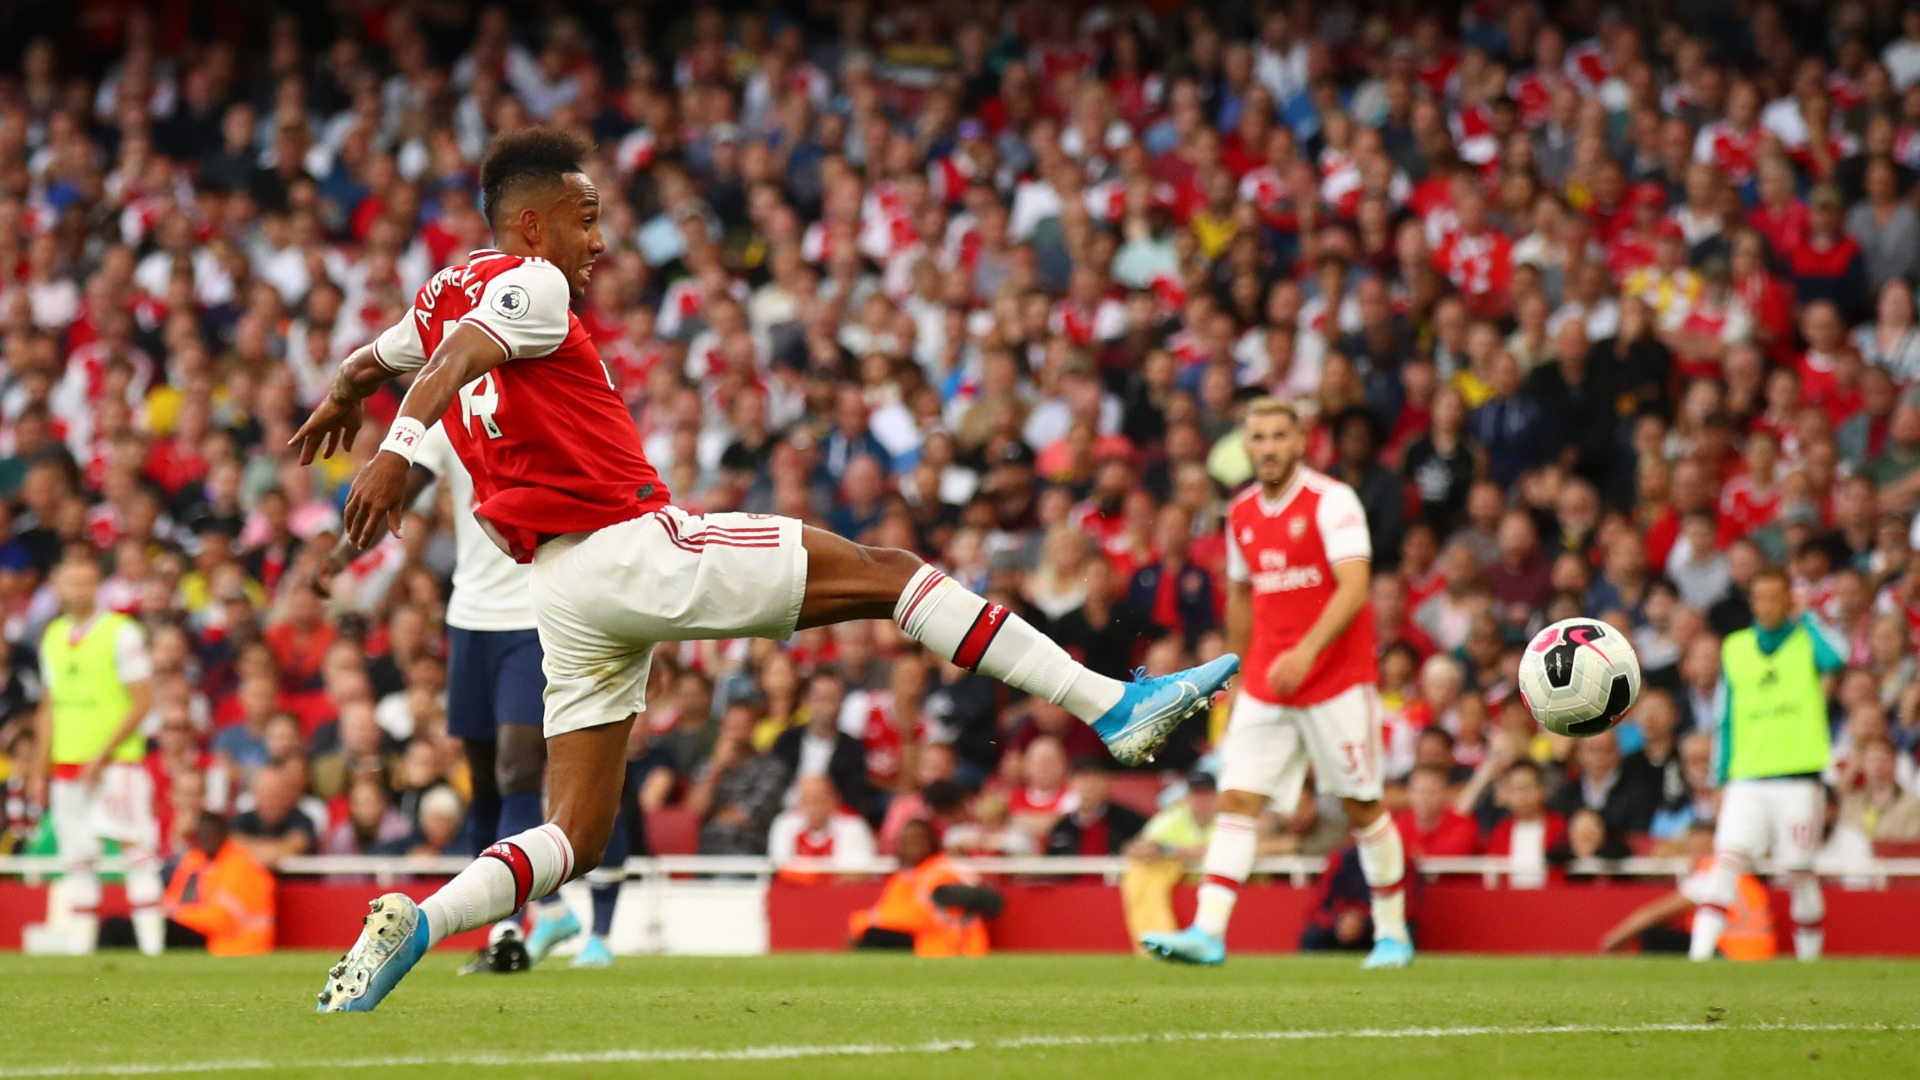 Premier League Review: Arsenal rally to earn derby draw, Richarlison at the double